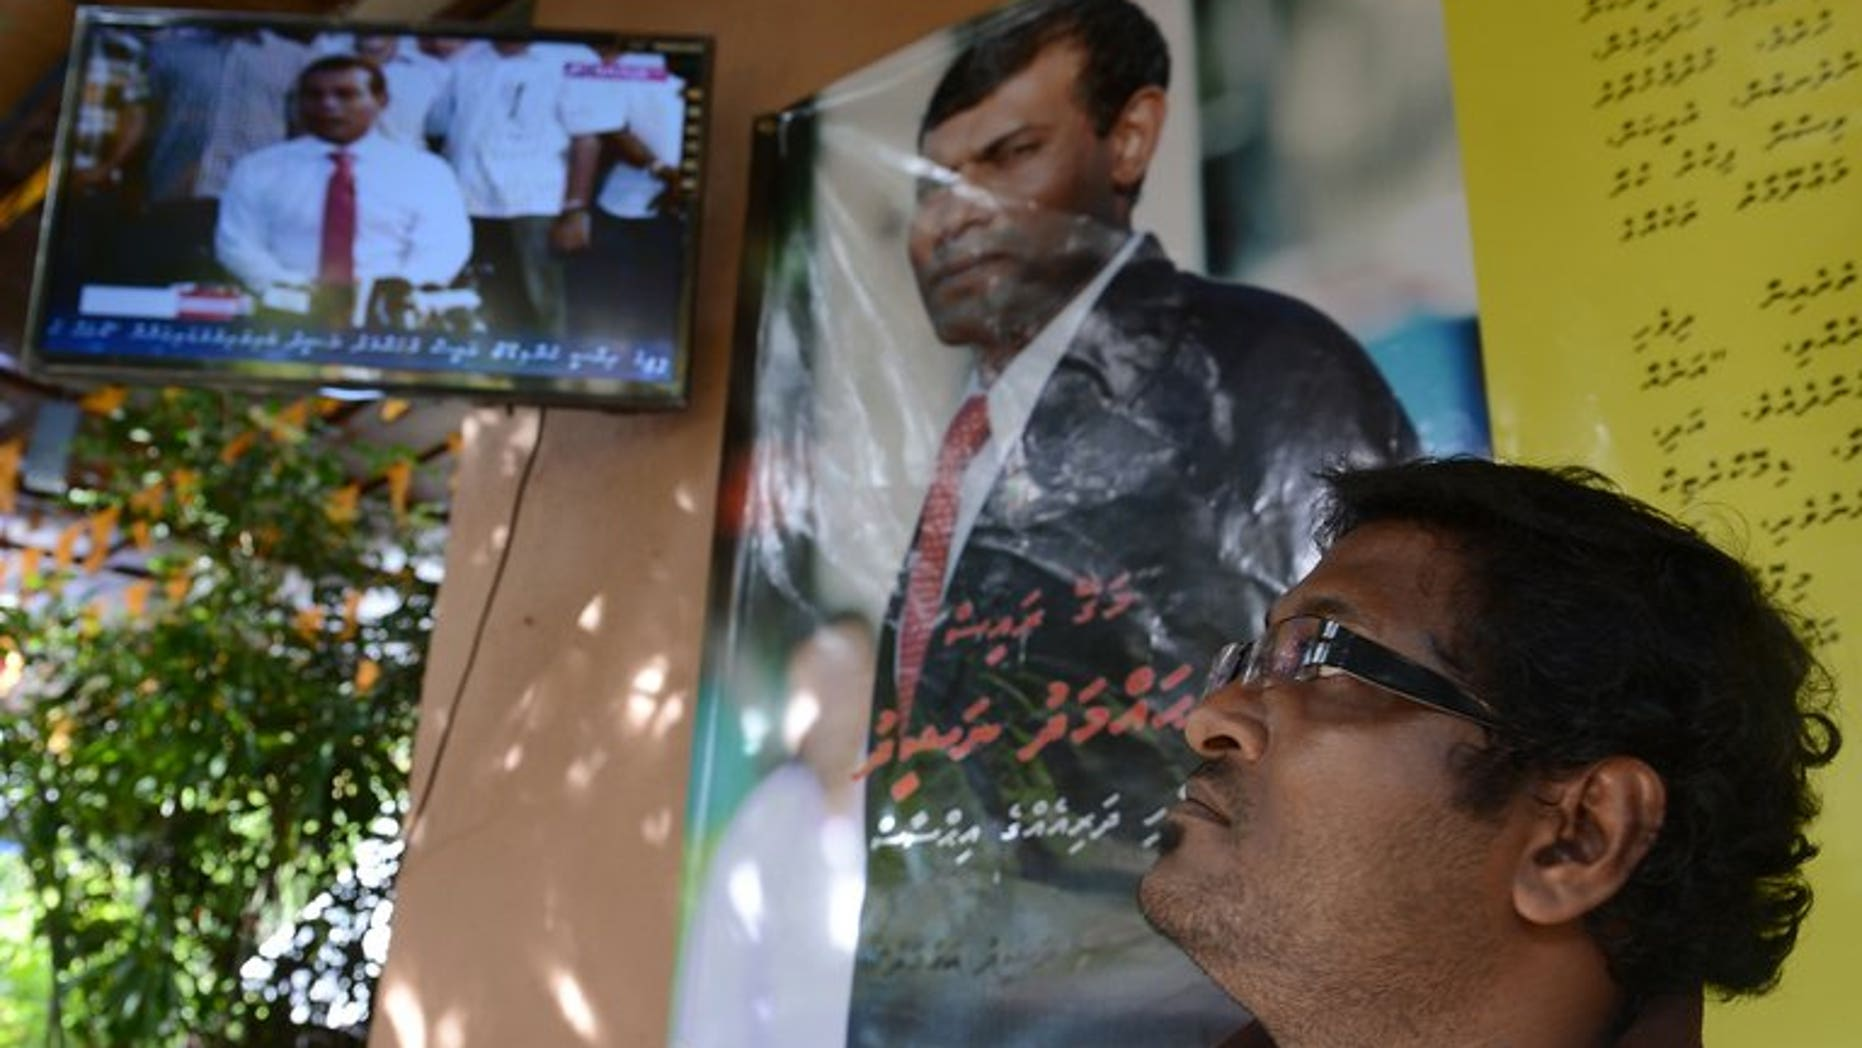 A Maldivian national watches a televised live press conference in Sri Lanka's capital Colombo on September 8, 2013.